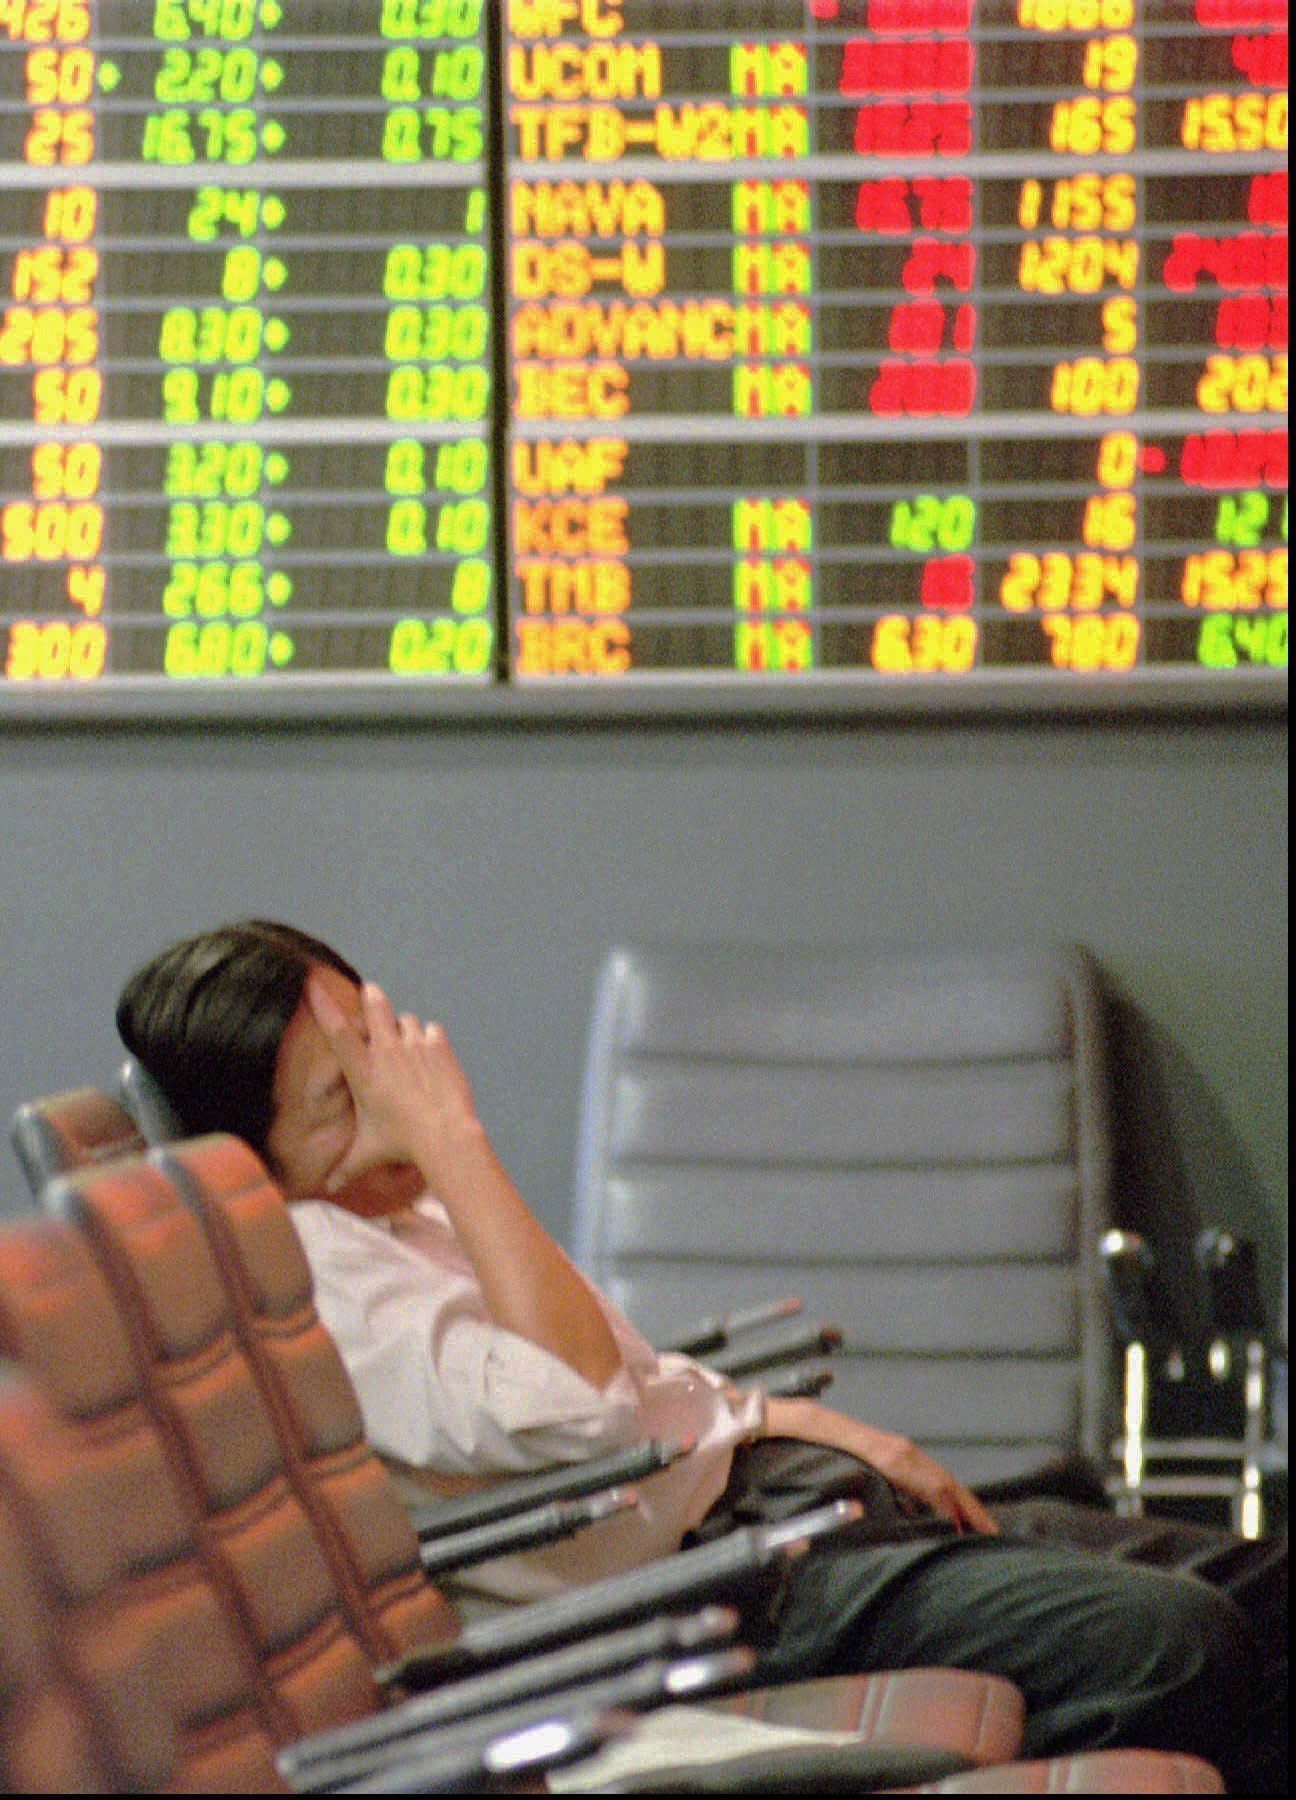 FILE- In this Nov. 21, 1997, file photo a Thai stock investor falls asleep while lonely monitoring a trading board at a stock house in the Stock Exchange of Thailand in Bangkok. A financial crisis that began in 1997 after Thailand devalued its currency against the U.S. dollar eventually sent markets reeling across the region in what became known as the Asian financial crisis. (AP Photo/Thaksina Khaikaew, File)